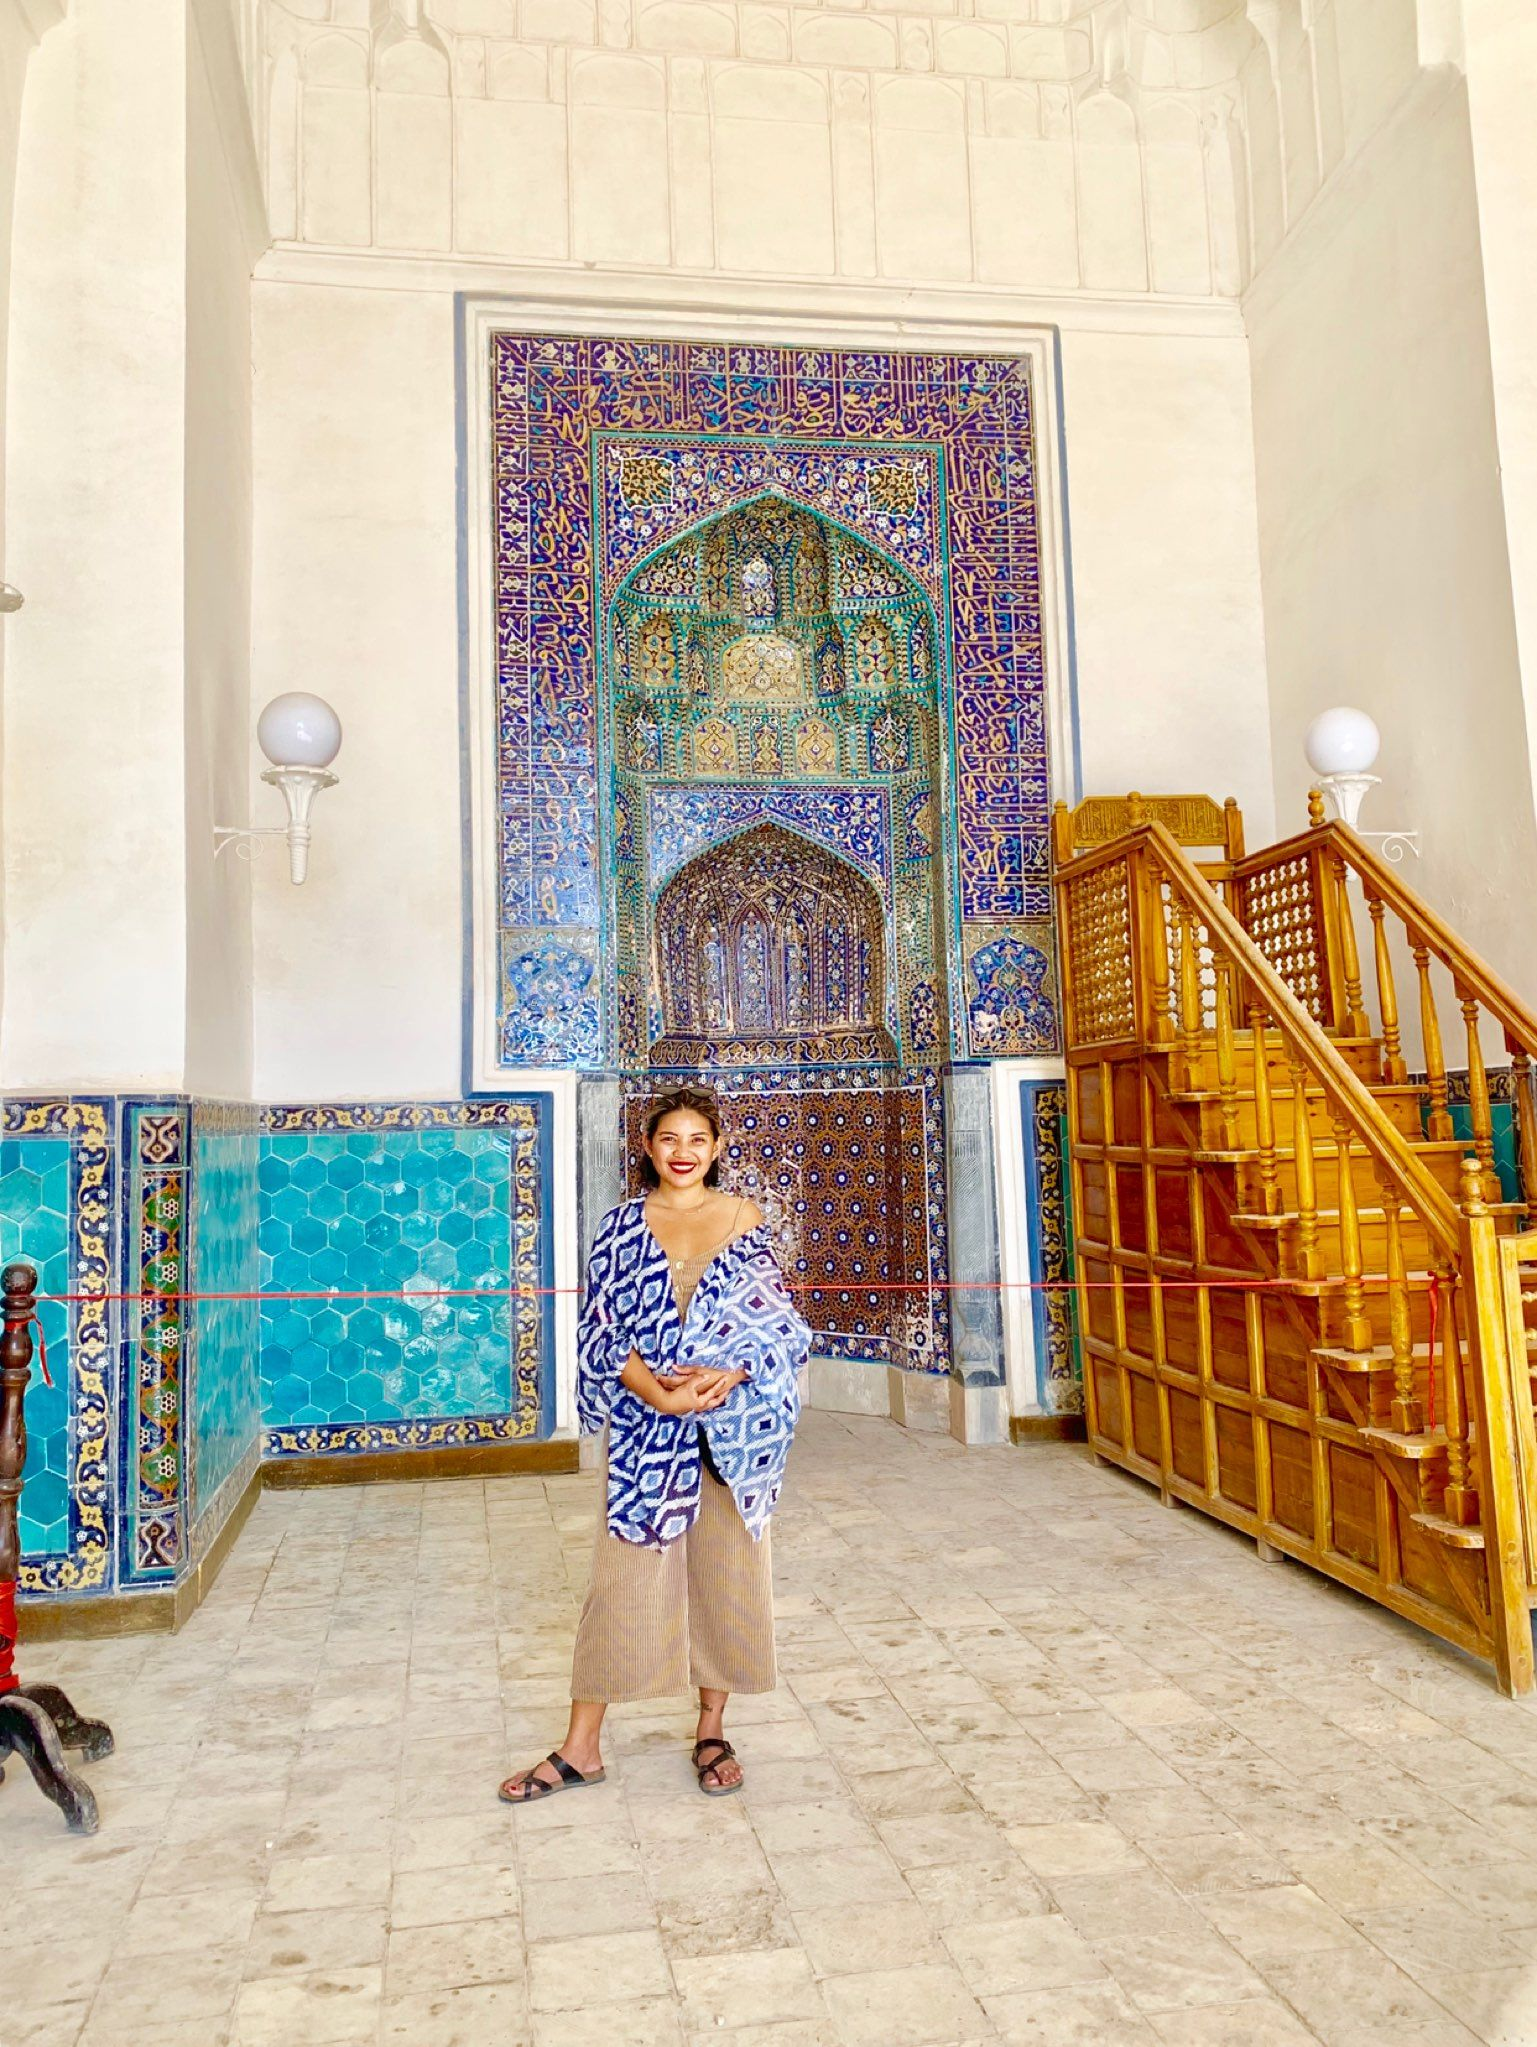 Kach Solo Travels in 2019 My last 2 days in Uzbekistan39.jpg